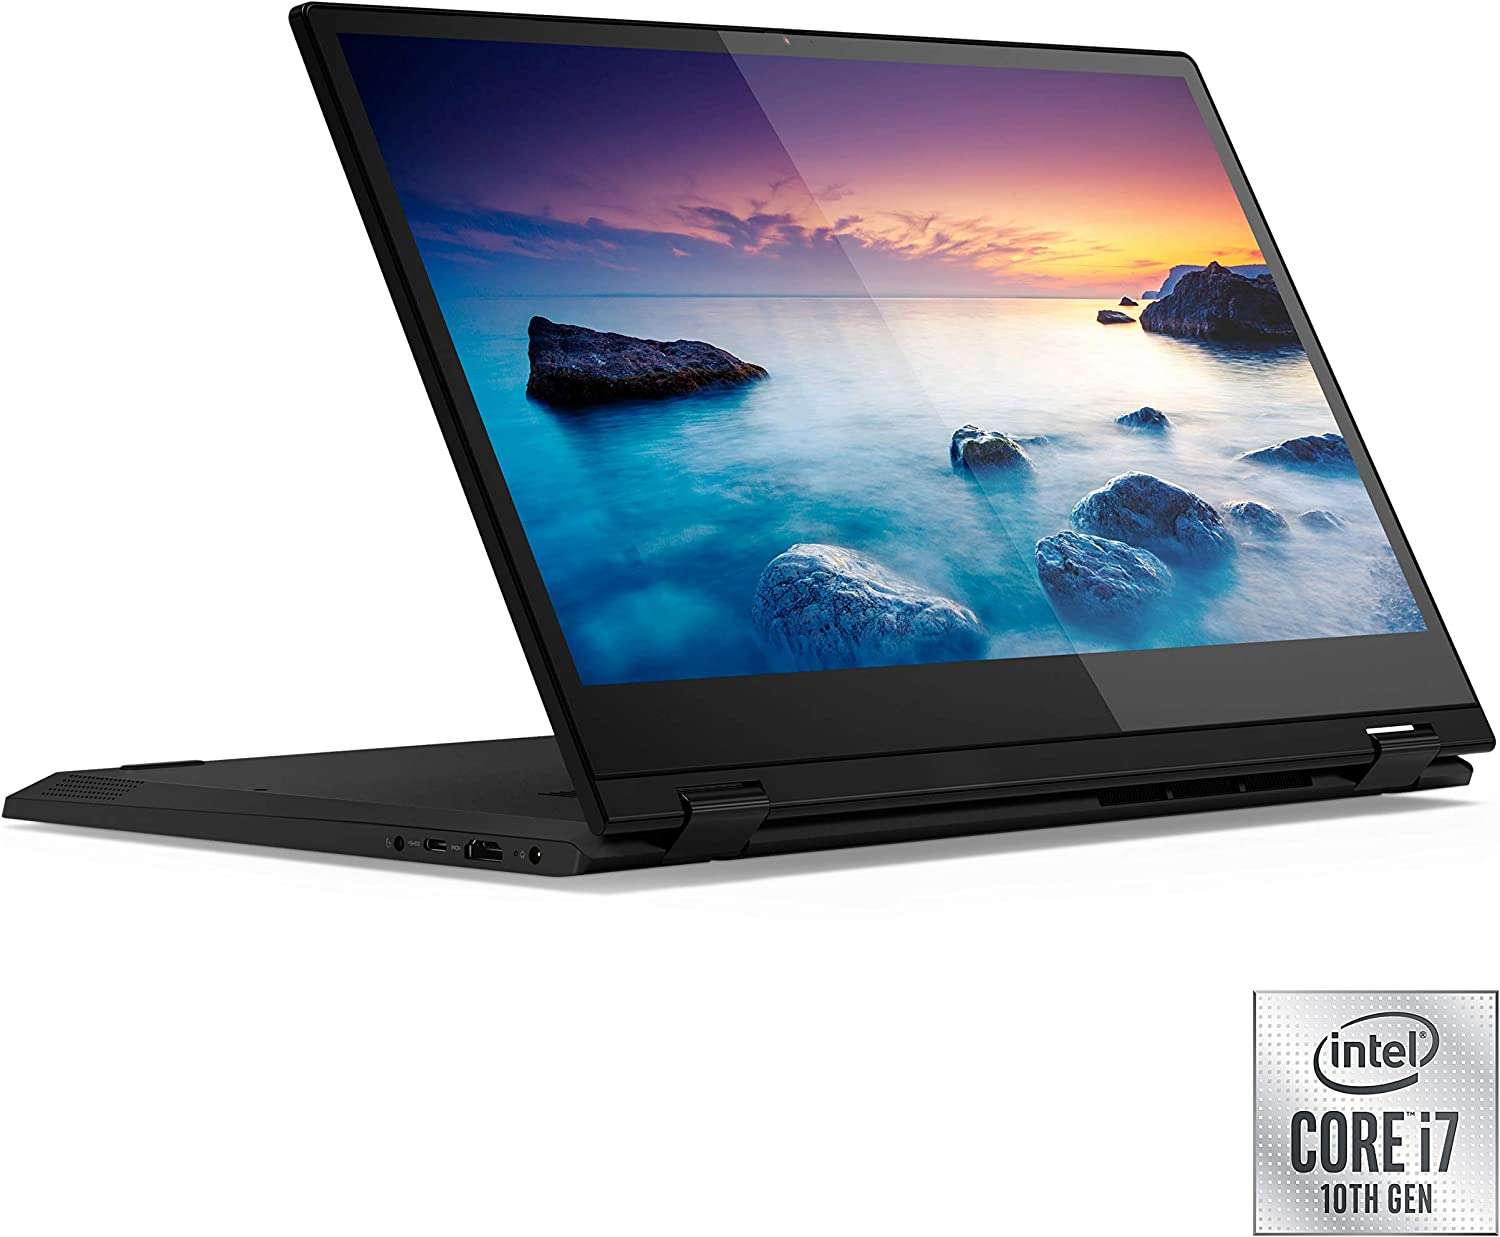 "Lenovo Flex 15 2-in-1 Convertible Laptop, 15.6"" FHD (1920 X 1080) Display, 10th Gen Intel Core i7-10510U Processor, 8GB DDR4 RAM, 512GB SSD, NVIDIA GeForce MX230, Win 10, 81XH0000US, Onyx Black"